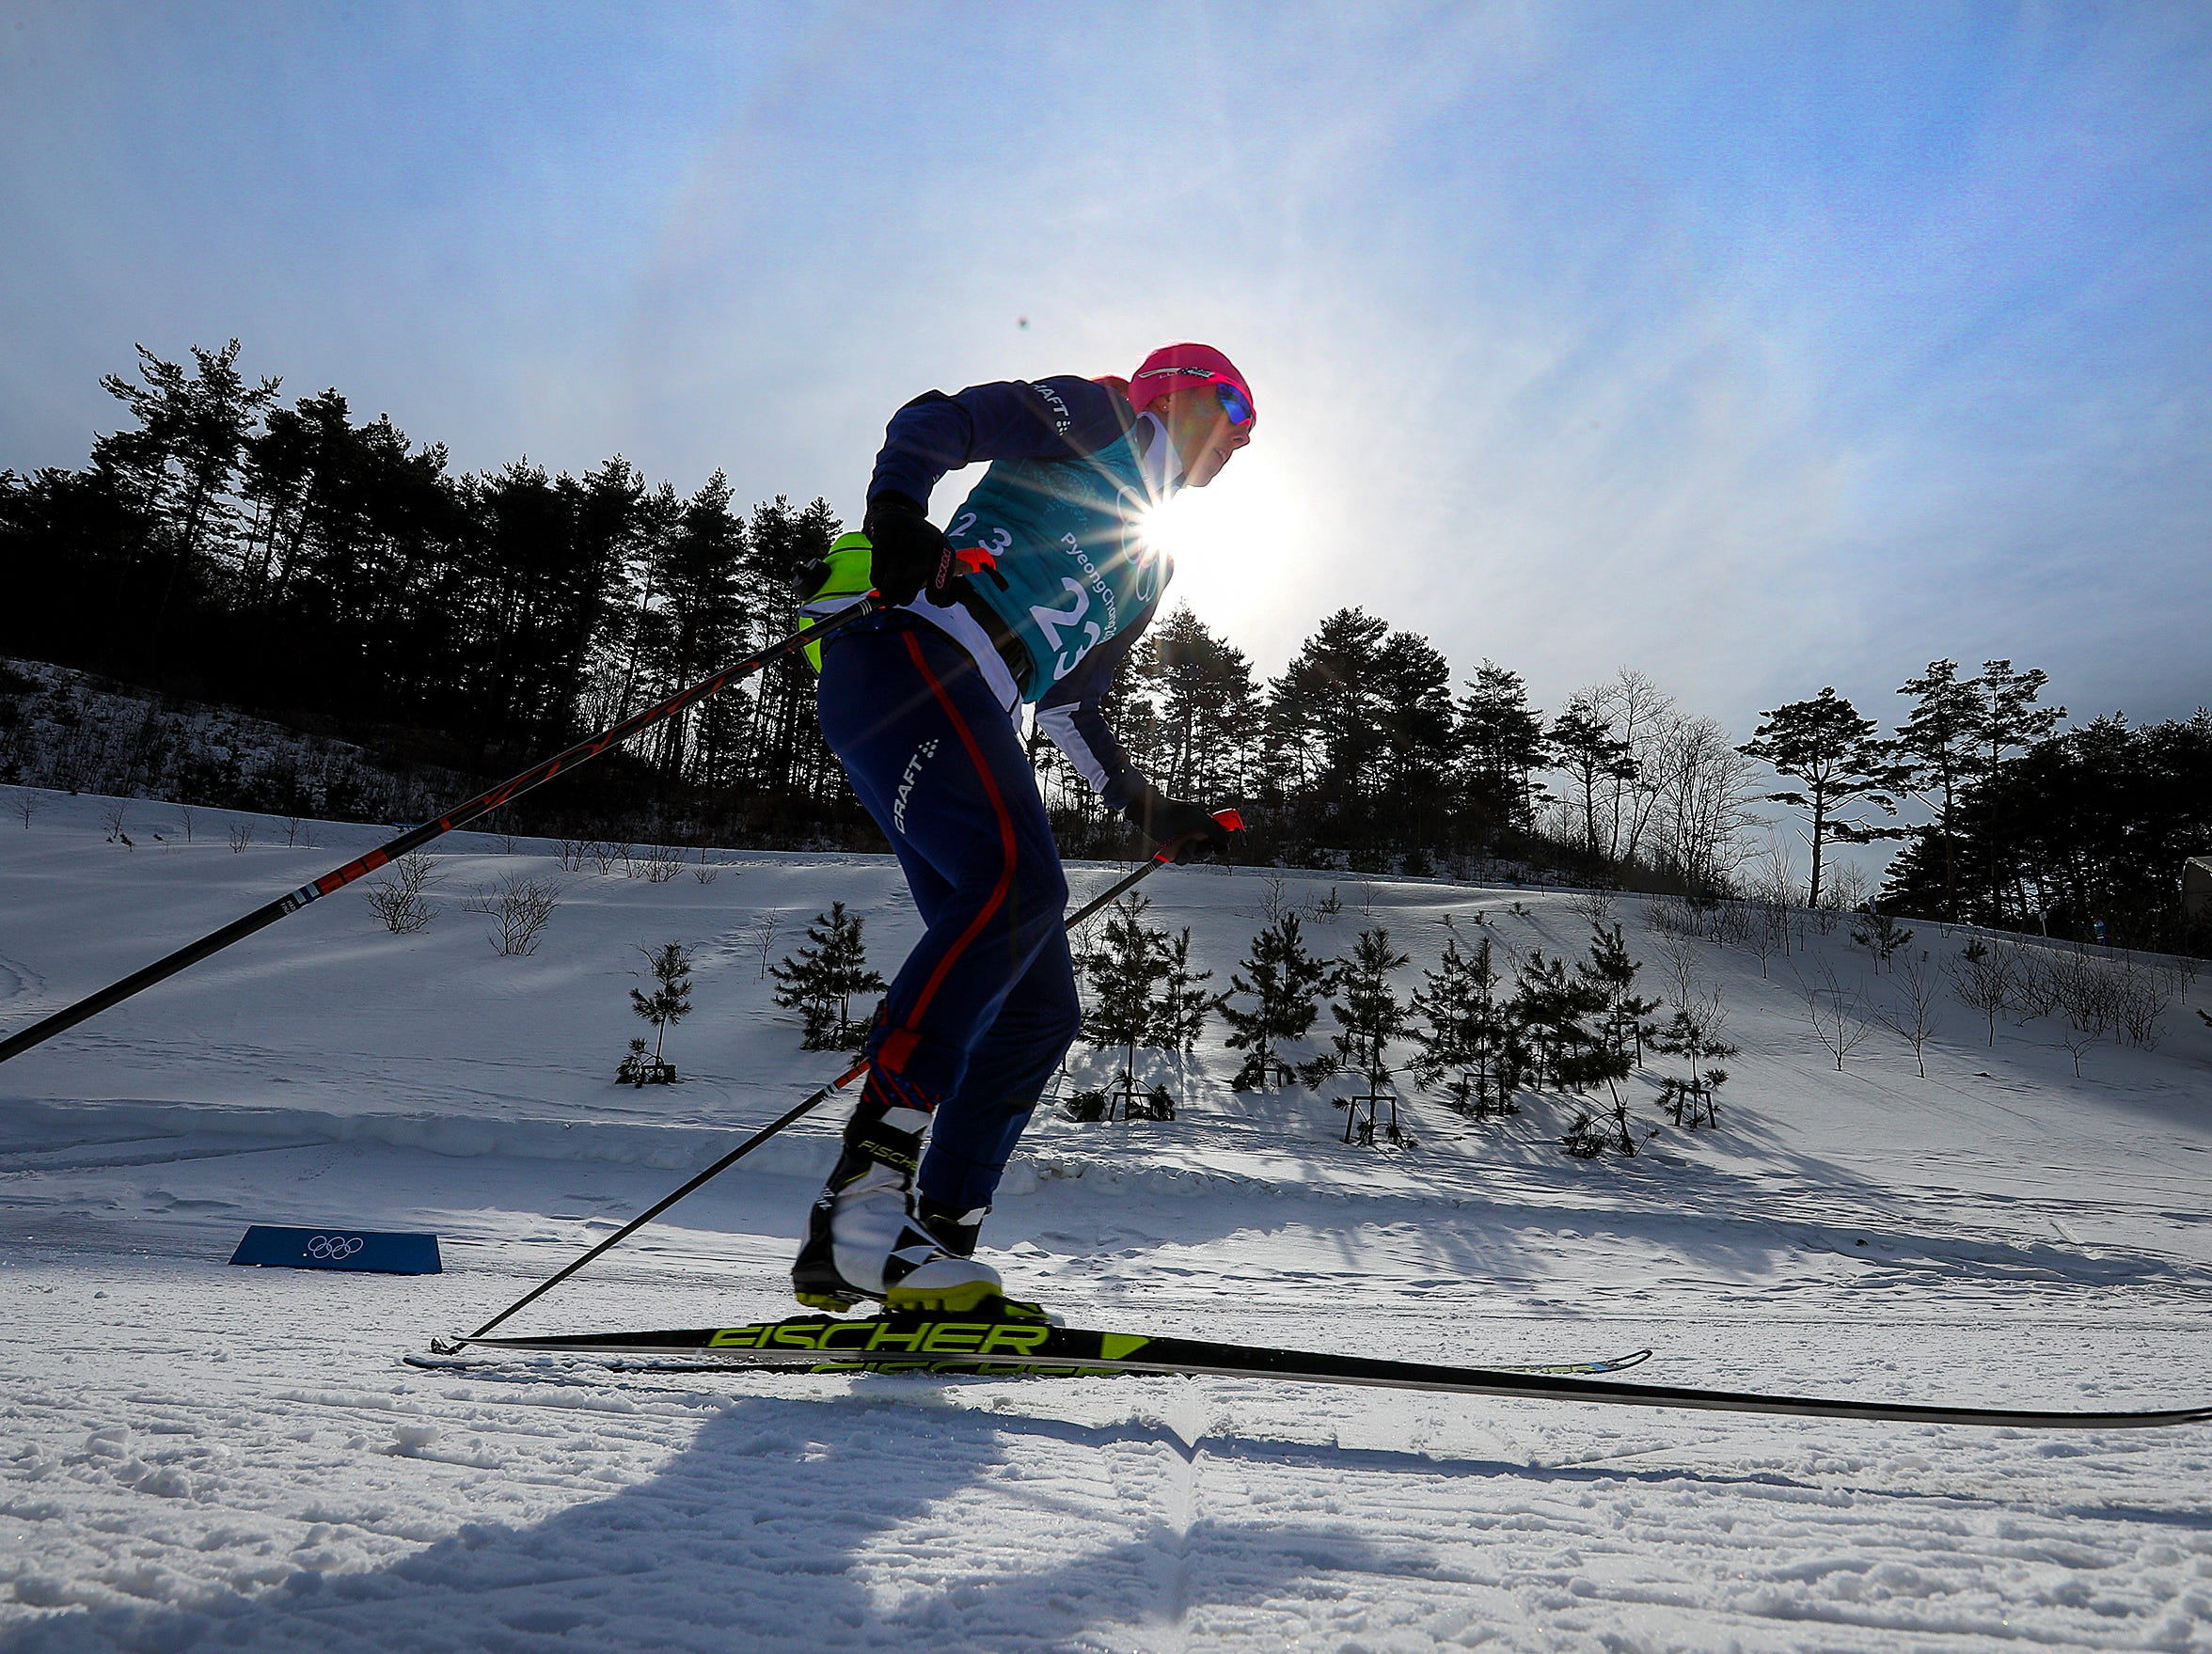 Feb 15, 2018; Pyeongchang, South Korea; Team USA's Kikkan Randall works her way up the hill during the Pyeongchang 2018 Olympic Winter Games at Alpensia Cross-Country Centre. Mandatory Credit: Matt Kryger-USA TODAY Sports